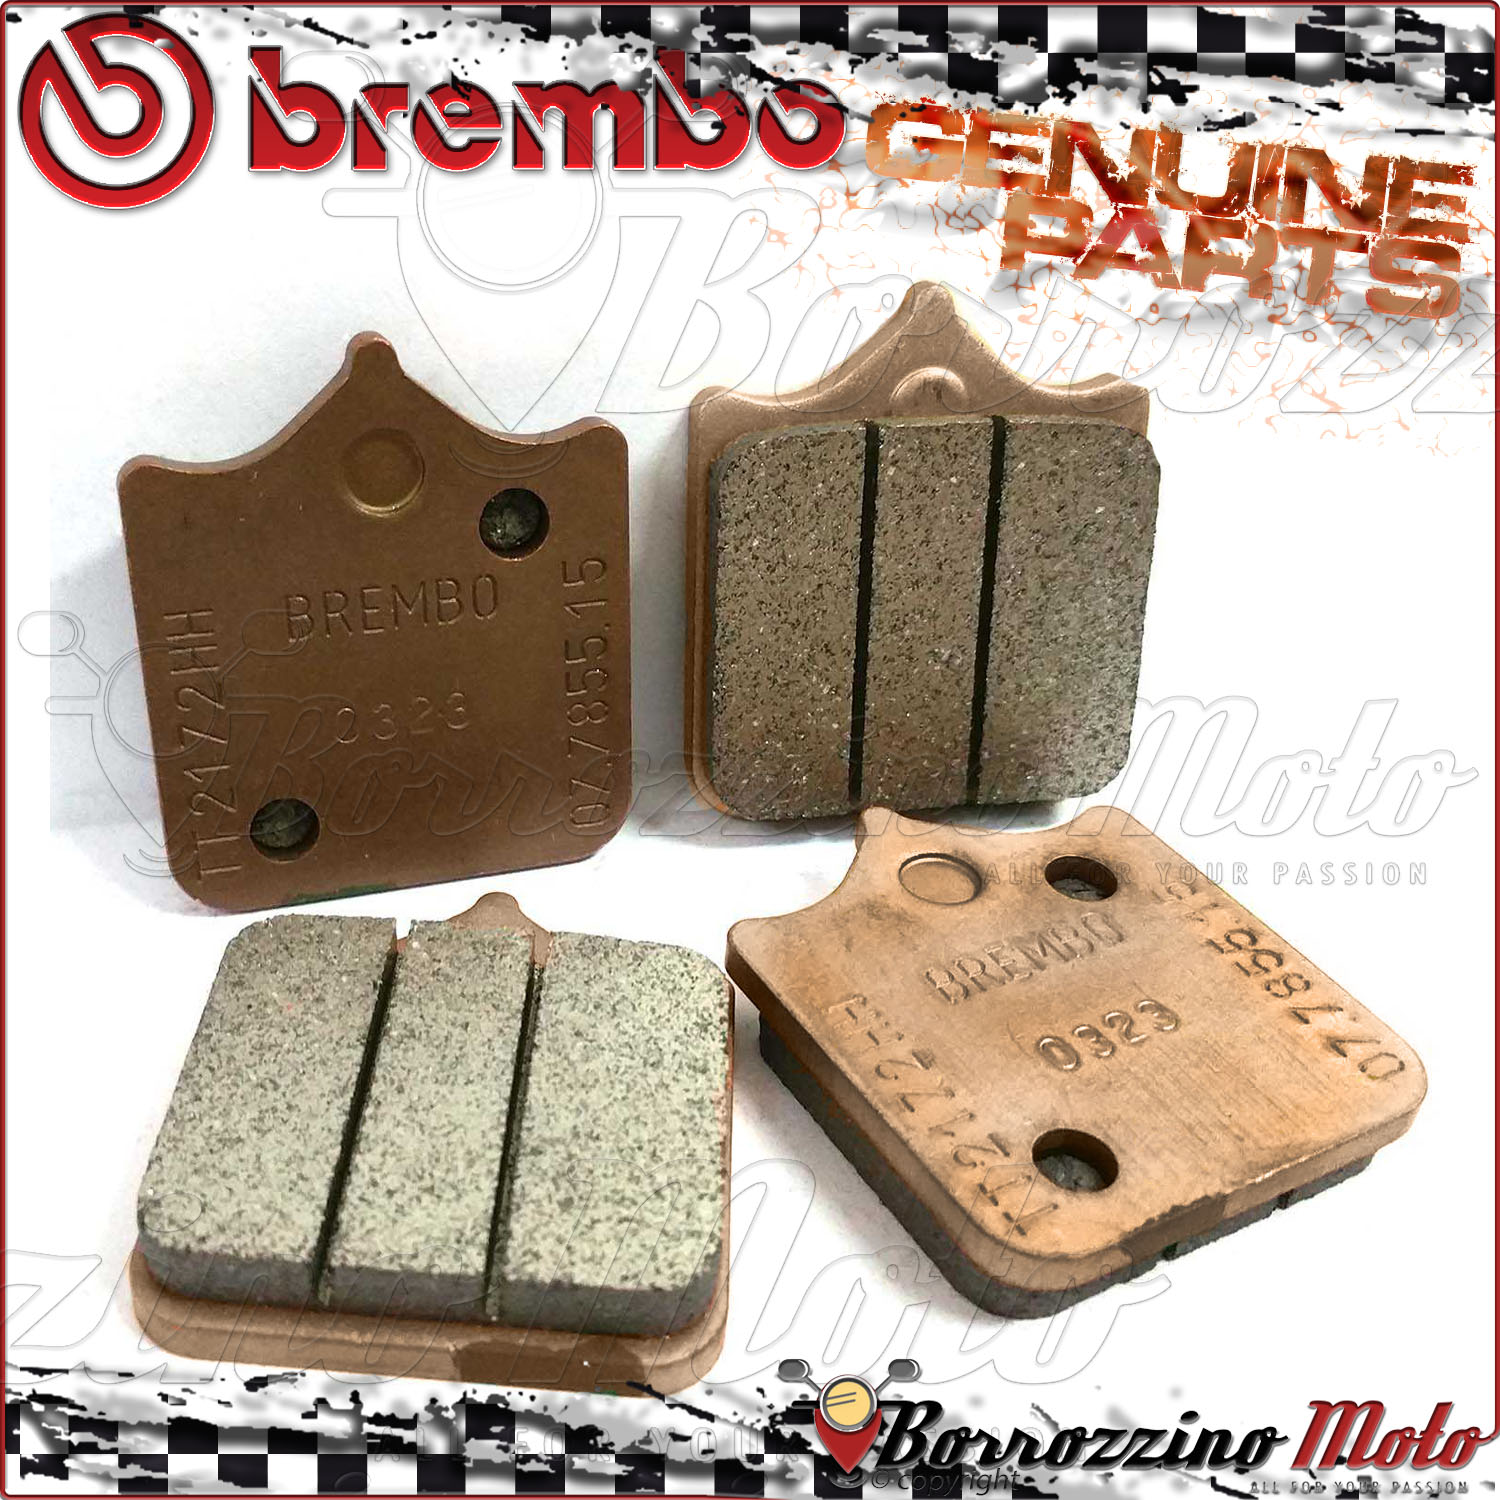 Details about 4 FRONT BRAKE PADS BREMBO GENUINE PARTS SINTERED 07BB0590 TM  SMX F 660 2006 2007